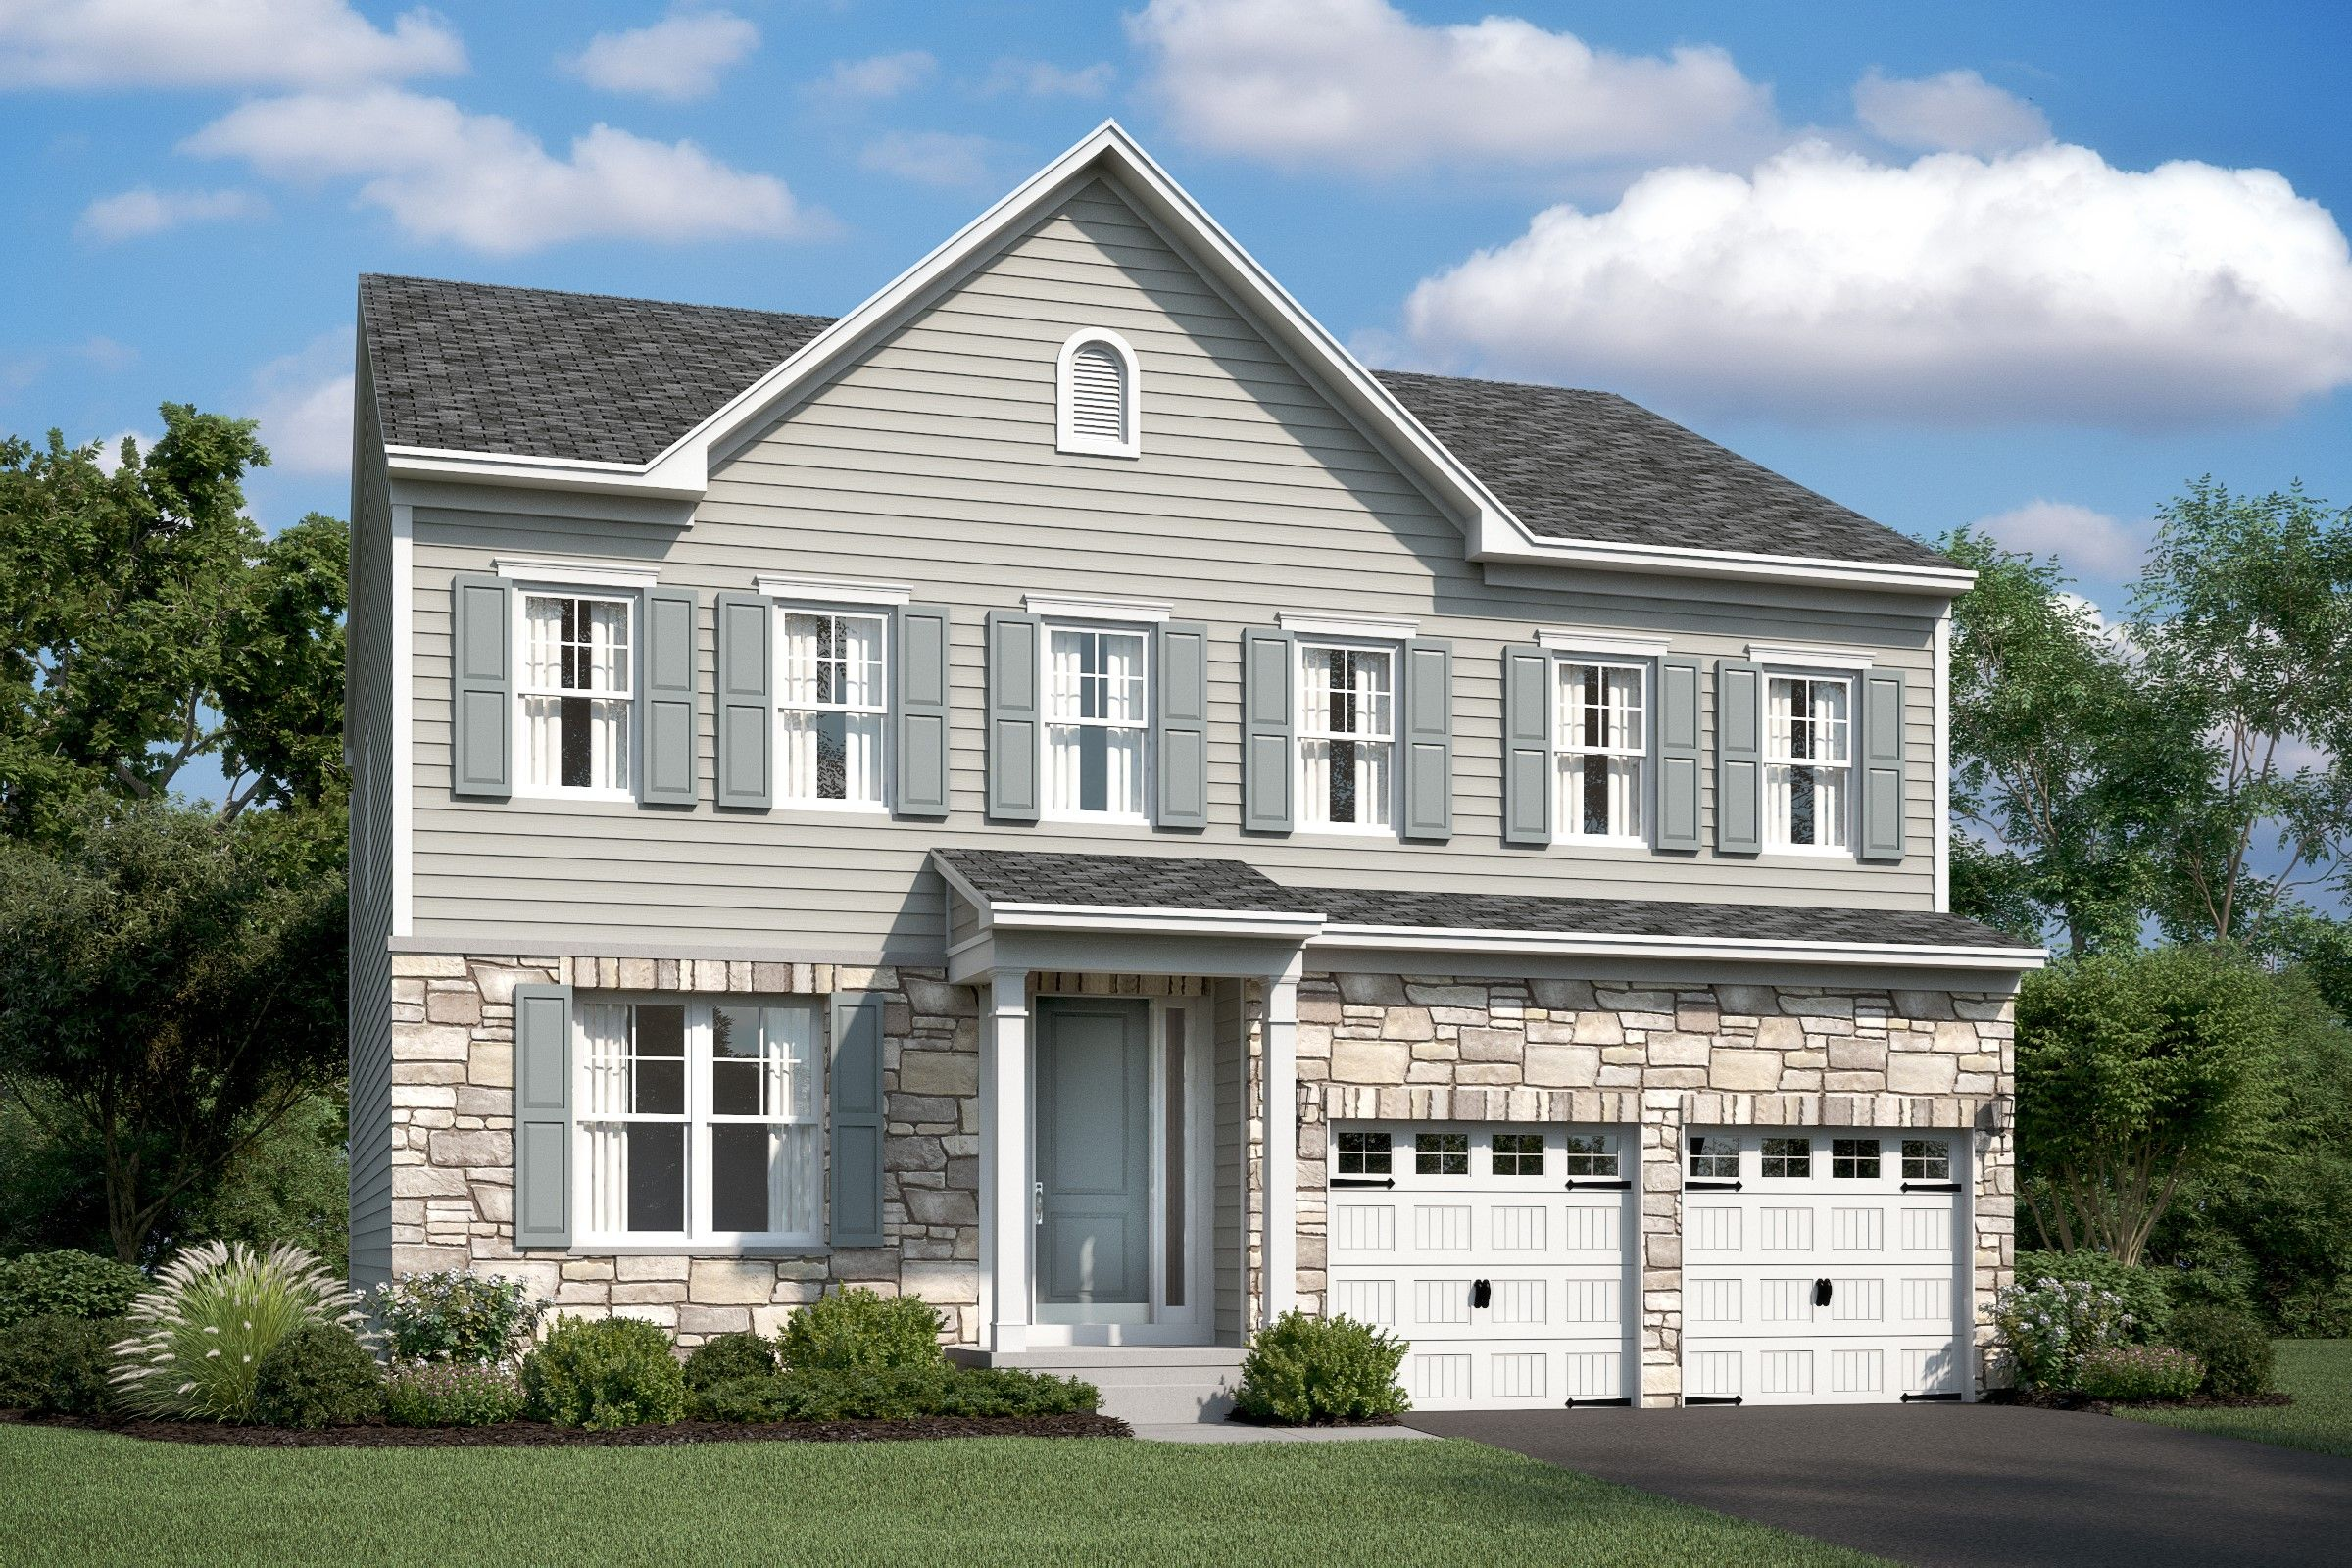 Single Family for Active at Eden Terrace - Lexington 110 Forest Avenue Catonsville, Maryland 21228 United States